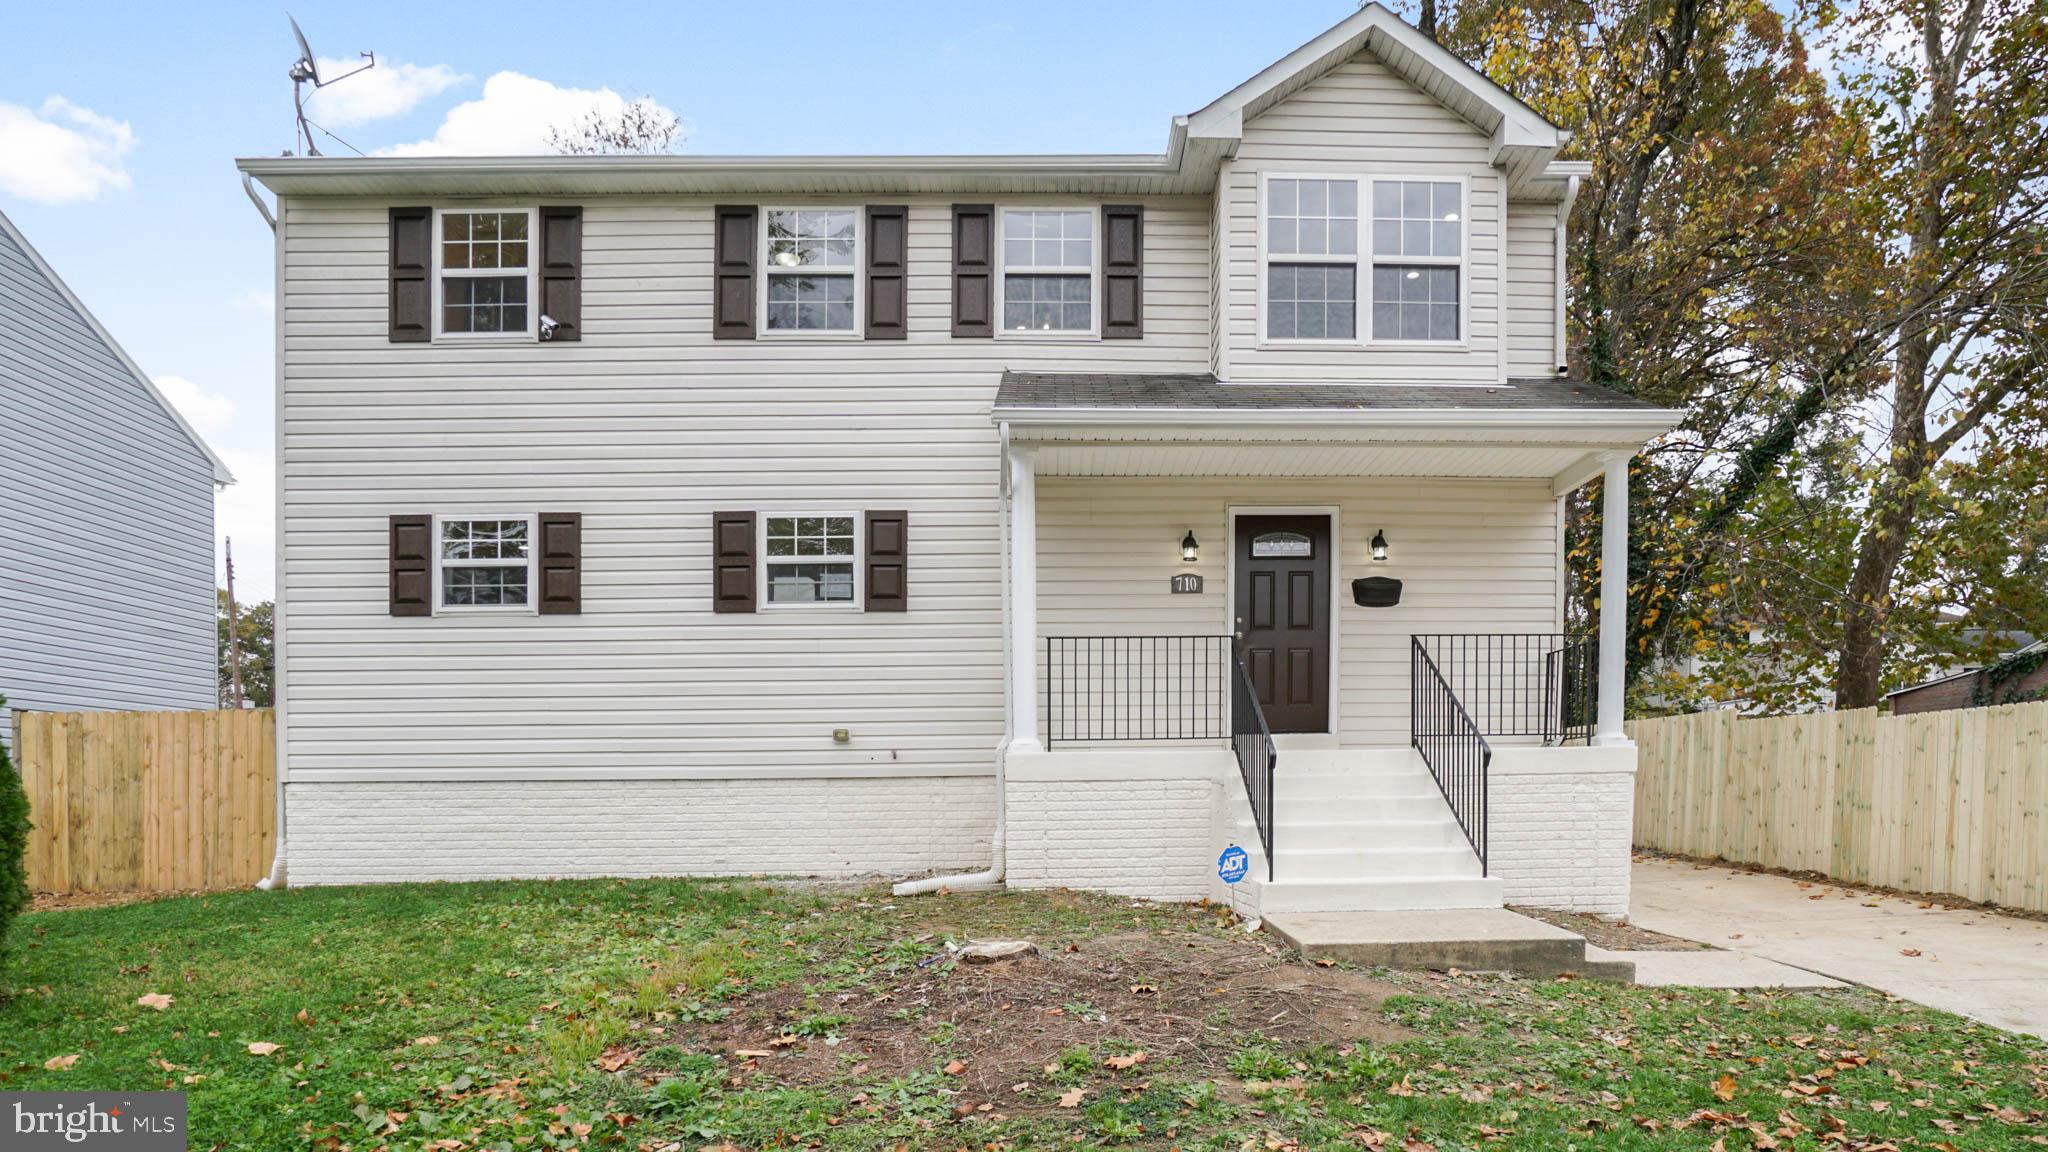 710 DRUM AVENUE, CAPITOL HEIGHTS, MD 20743